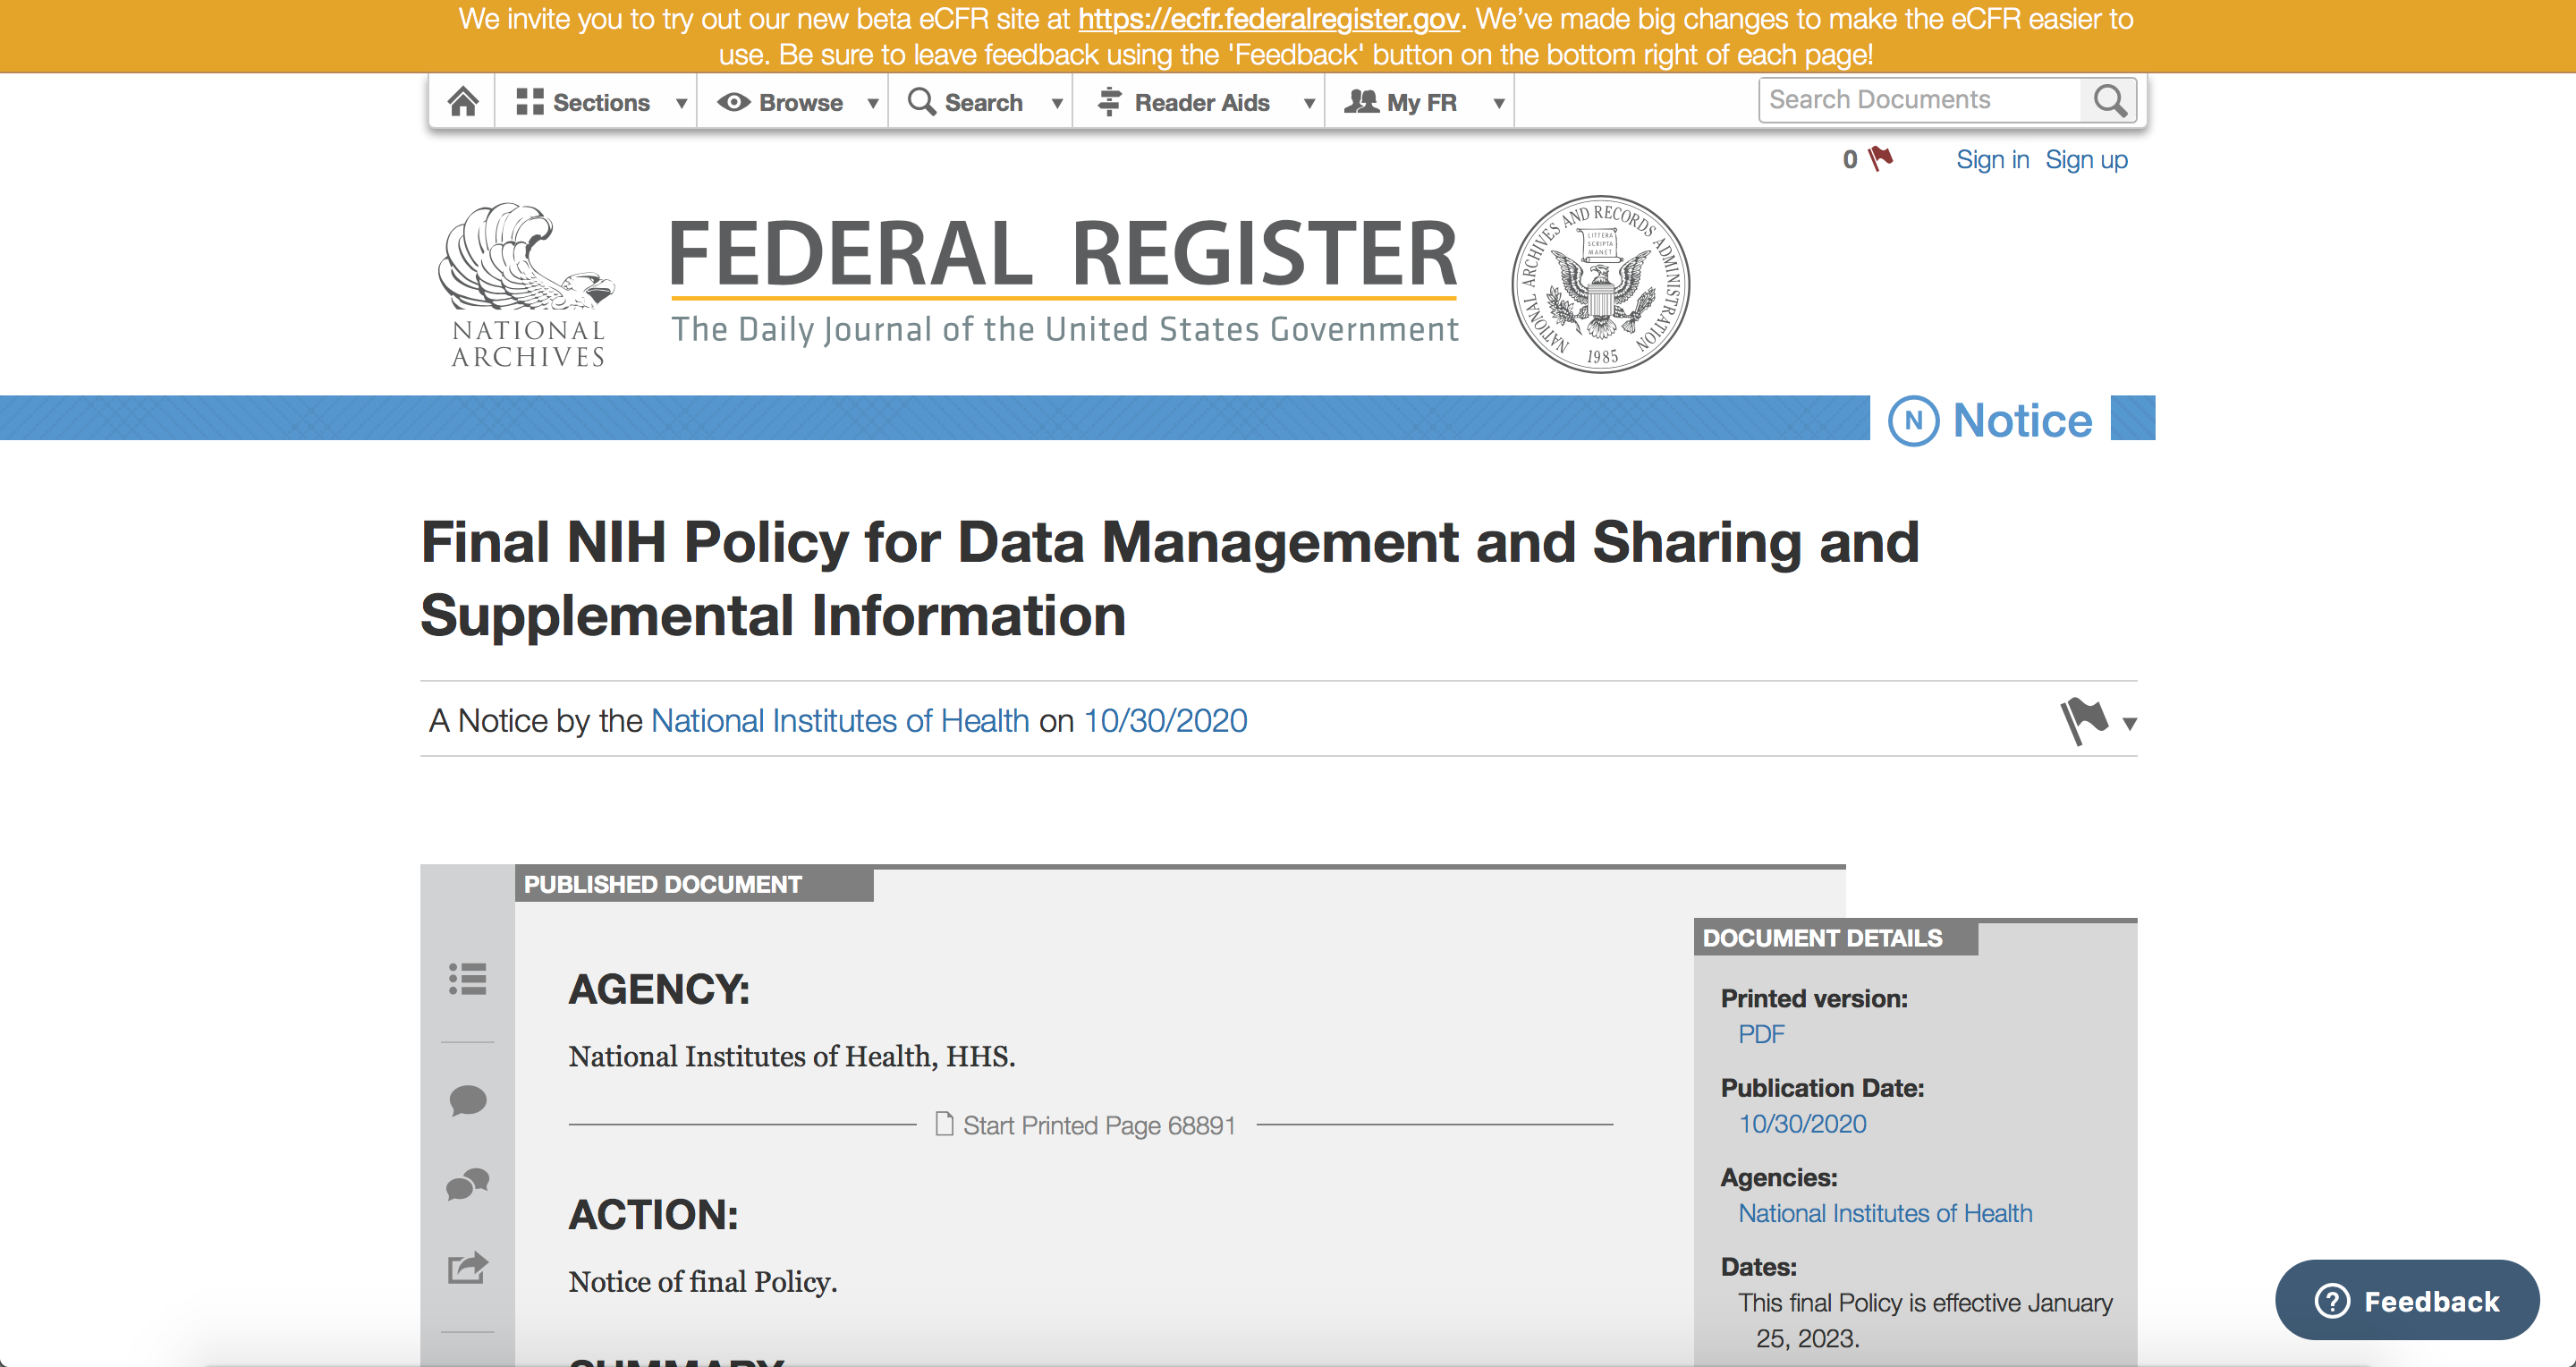 NIH Data Management image